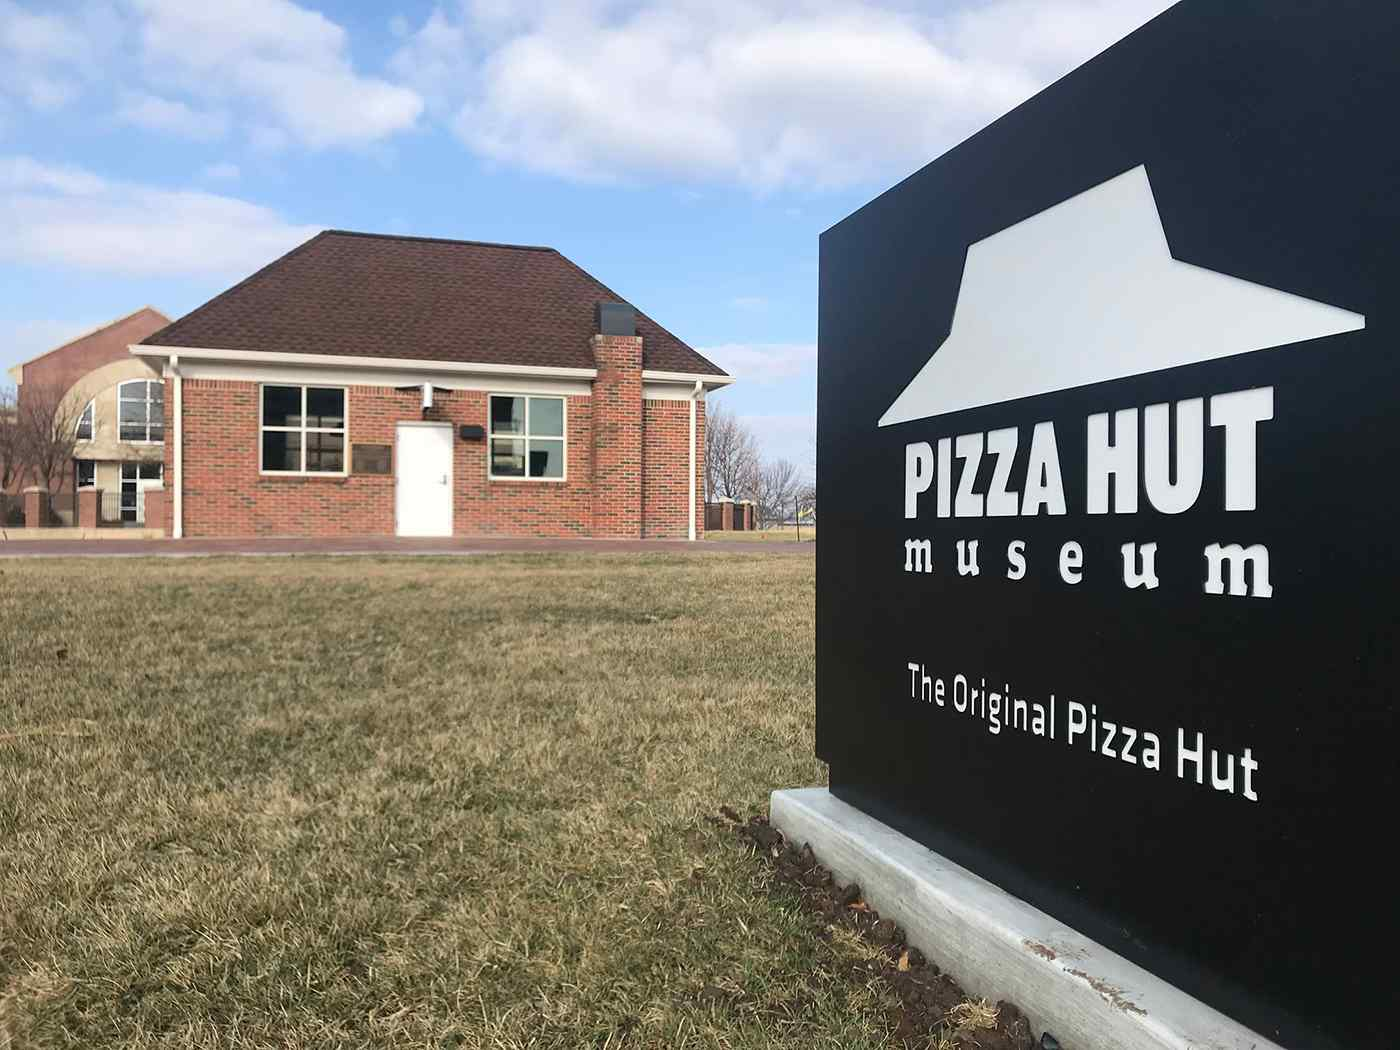 The original Pizza Hut was founded in 1958 by two Wichita State students, brothers Dan and Frank Carney.